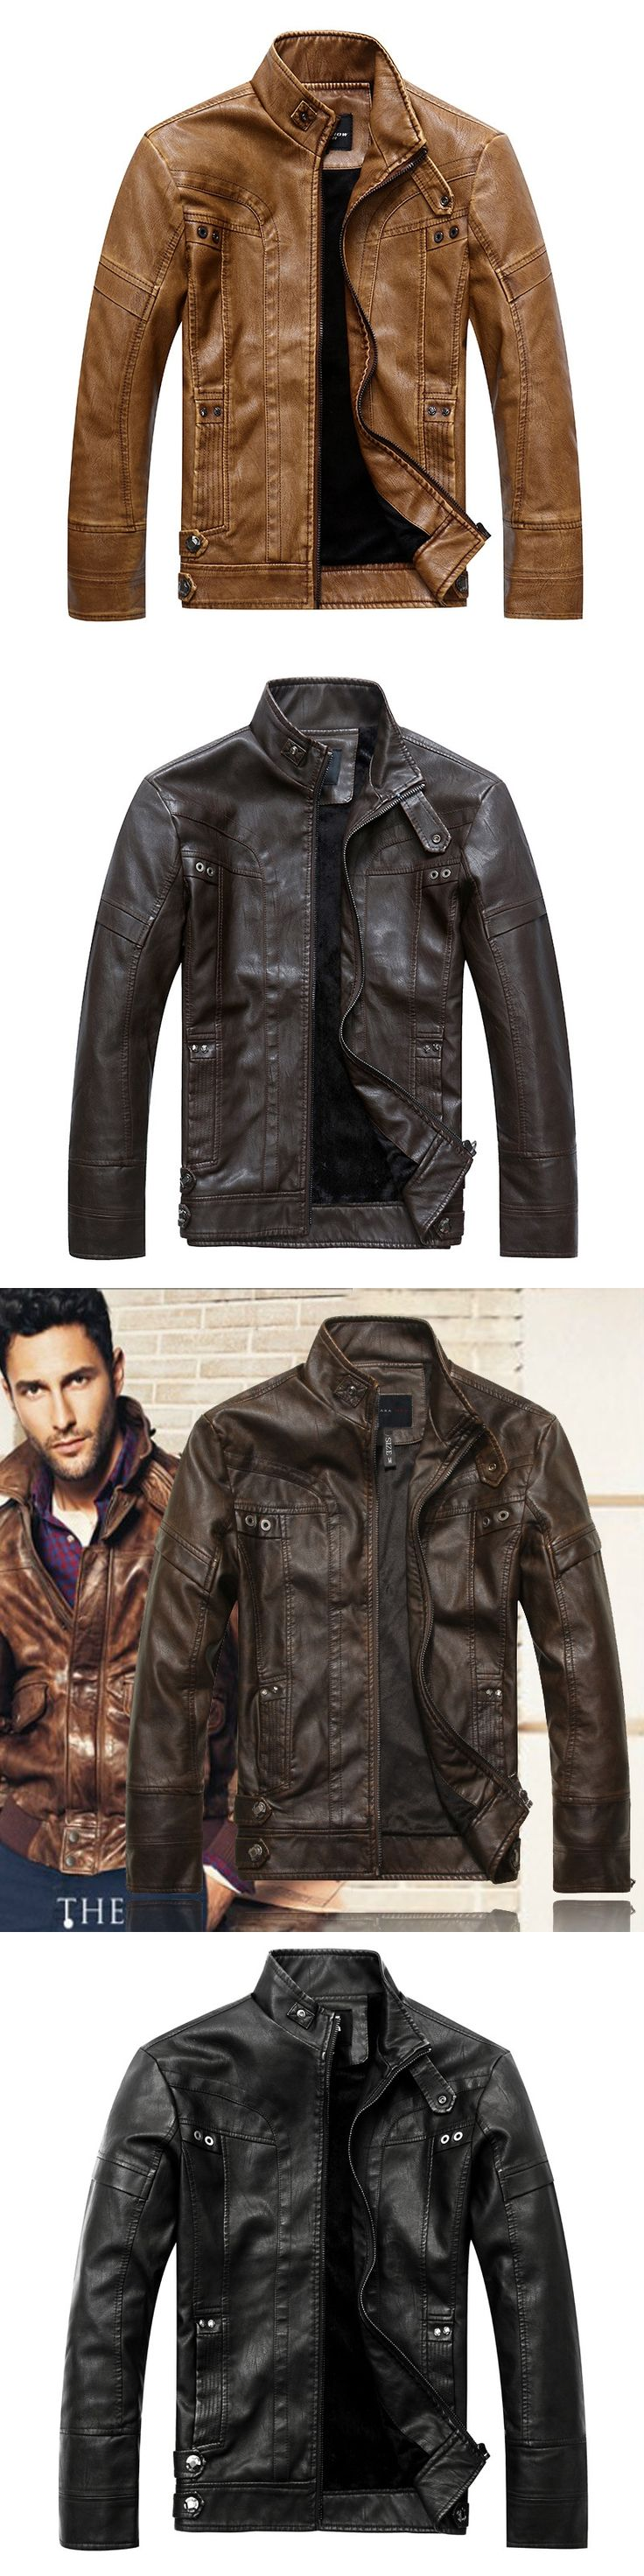 Spring Autumn Brand Male Moto Leather Jacket Men Slim Short Stand Collar Jaqueta Couro Bomber Jacket Faux Leather Fur Coat Suede